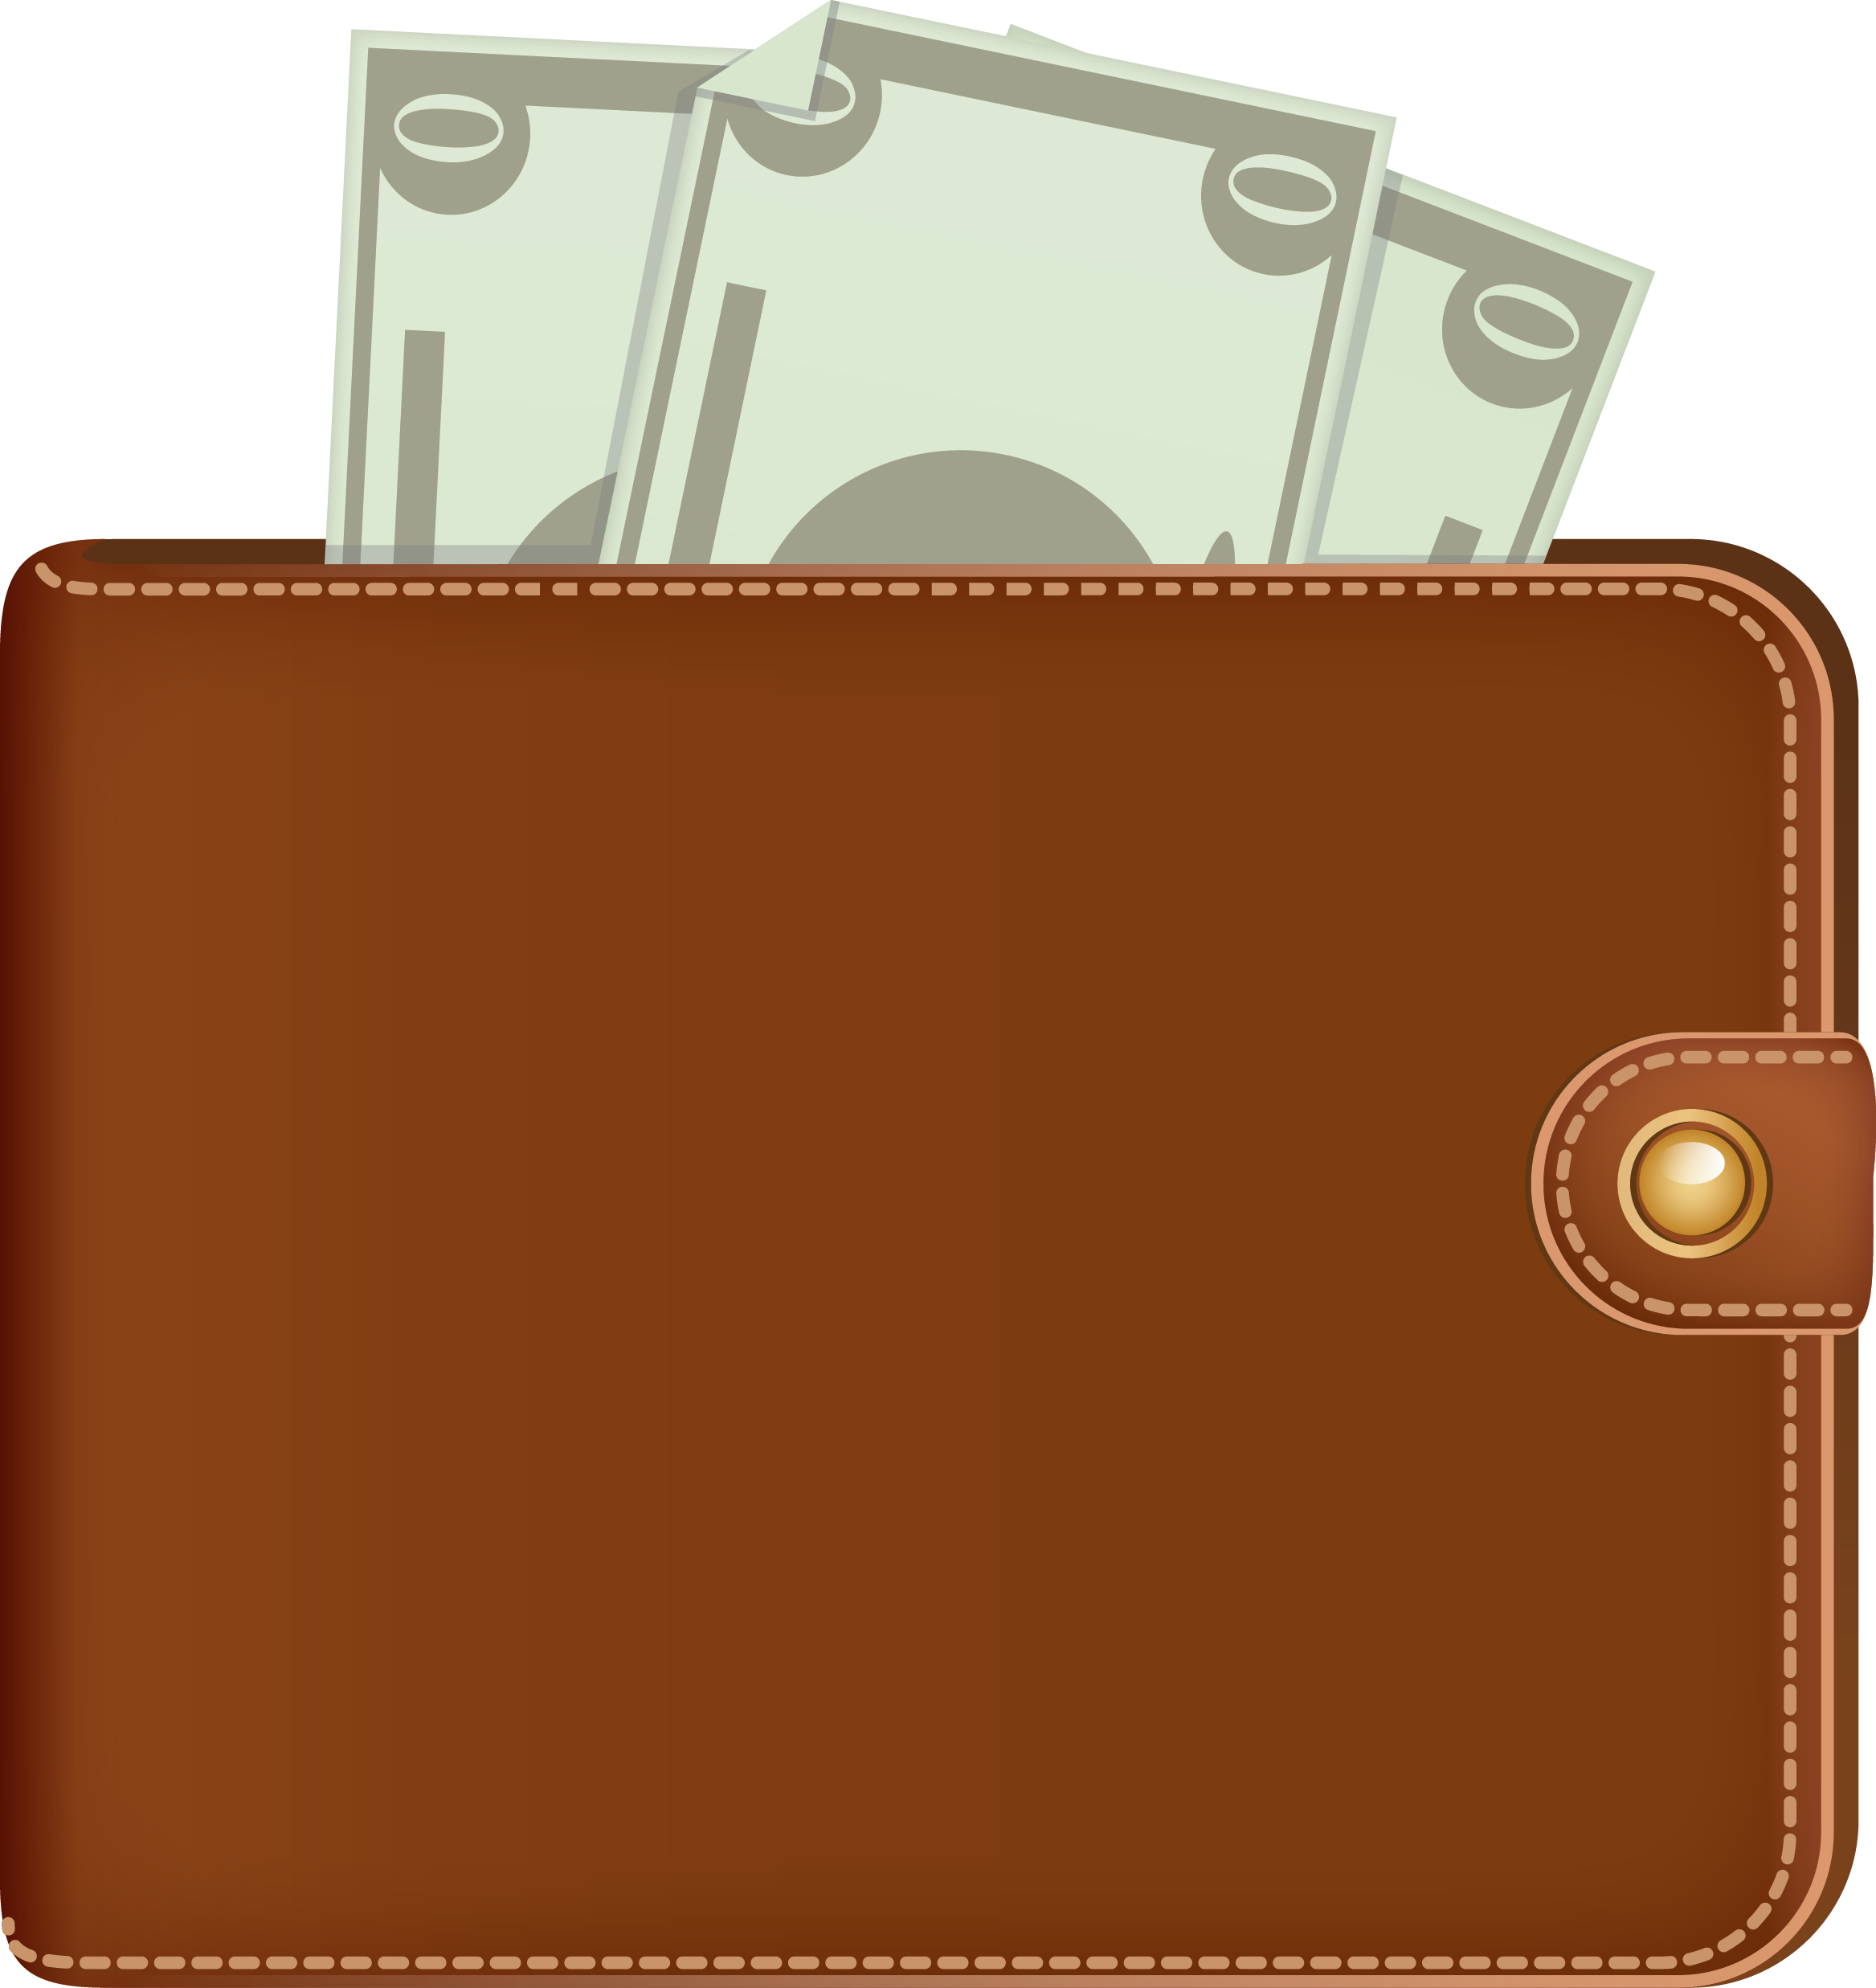 With money transparent png. Wallet clipart woman wallet